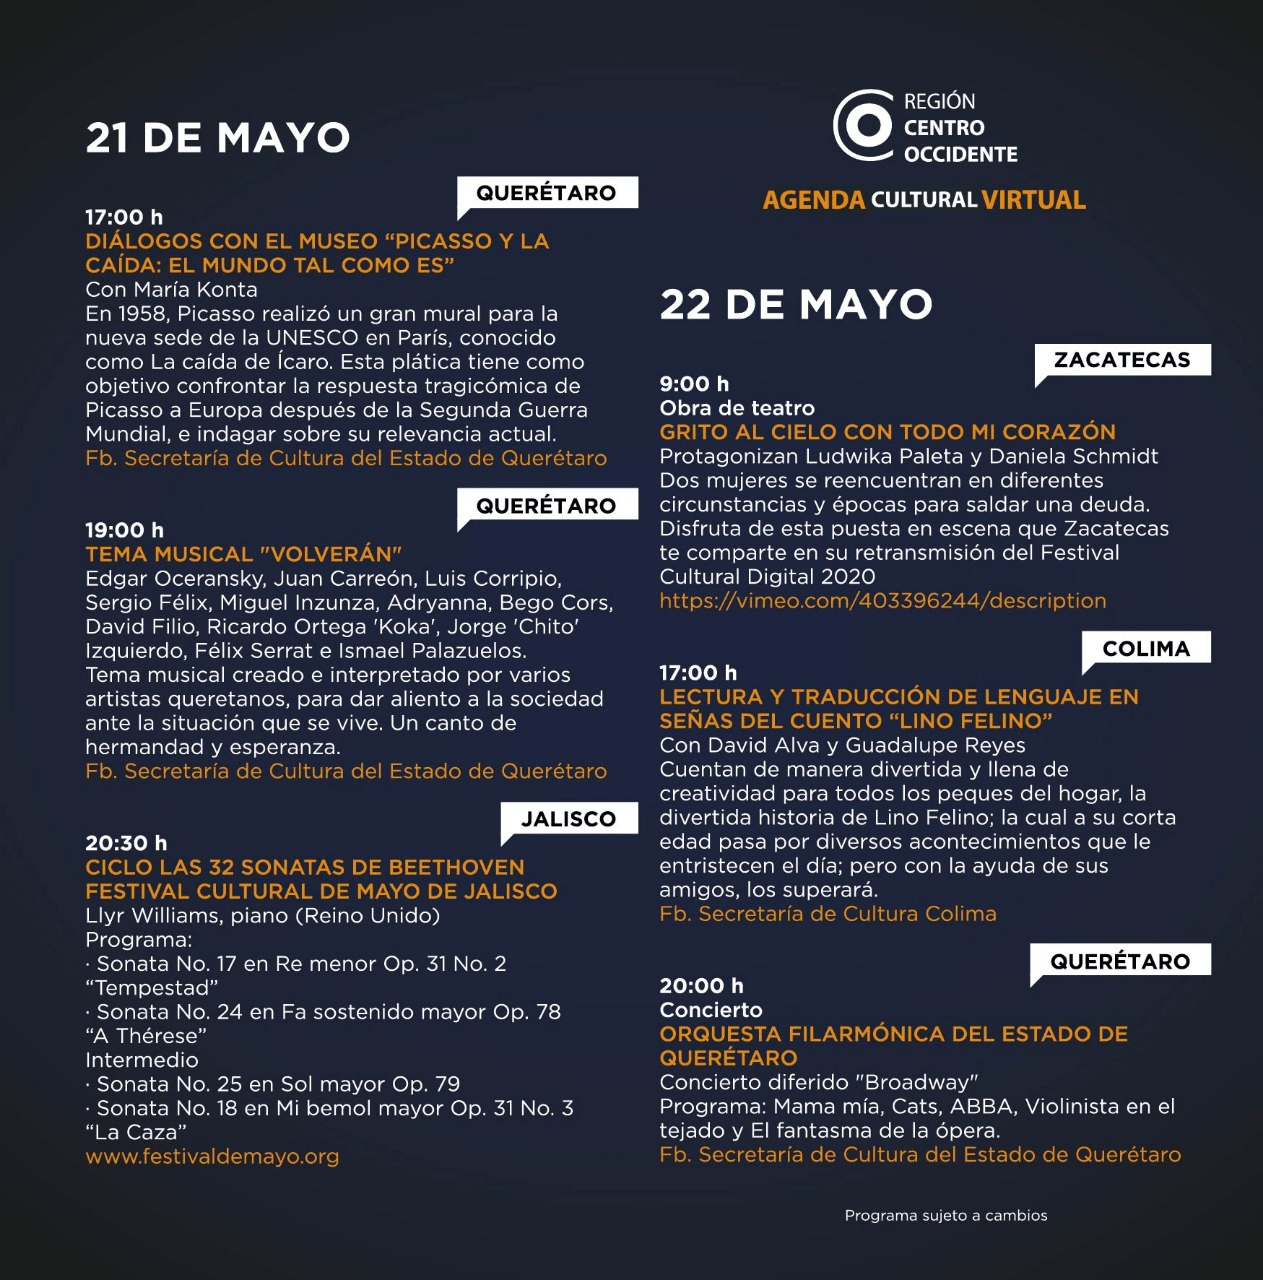 Agenda Centro Occidente 6